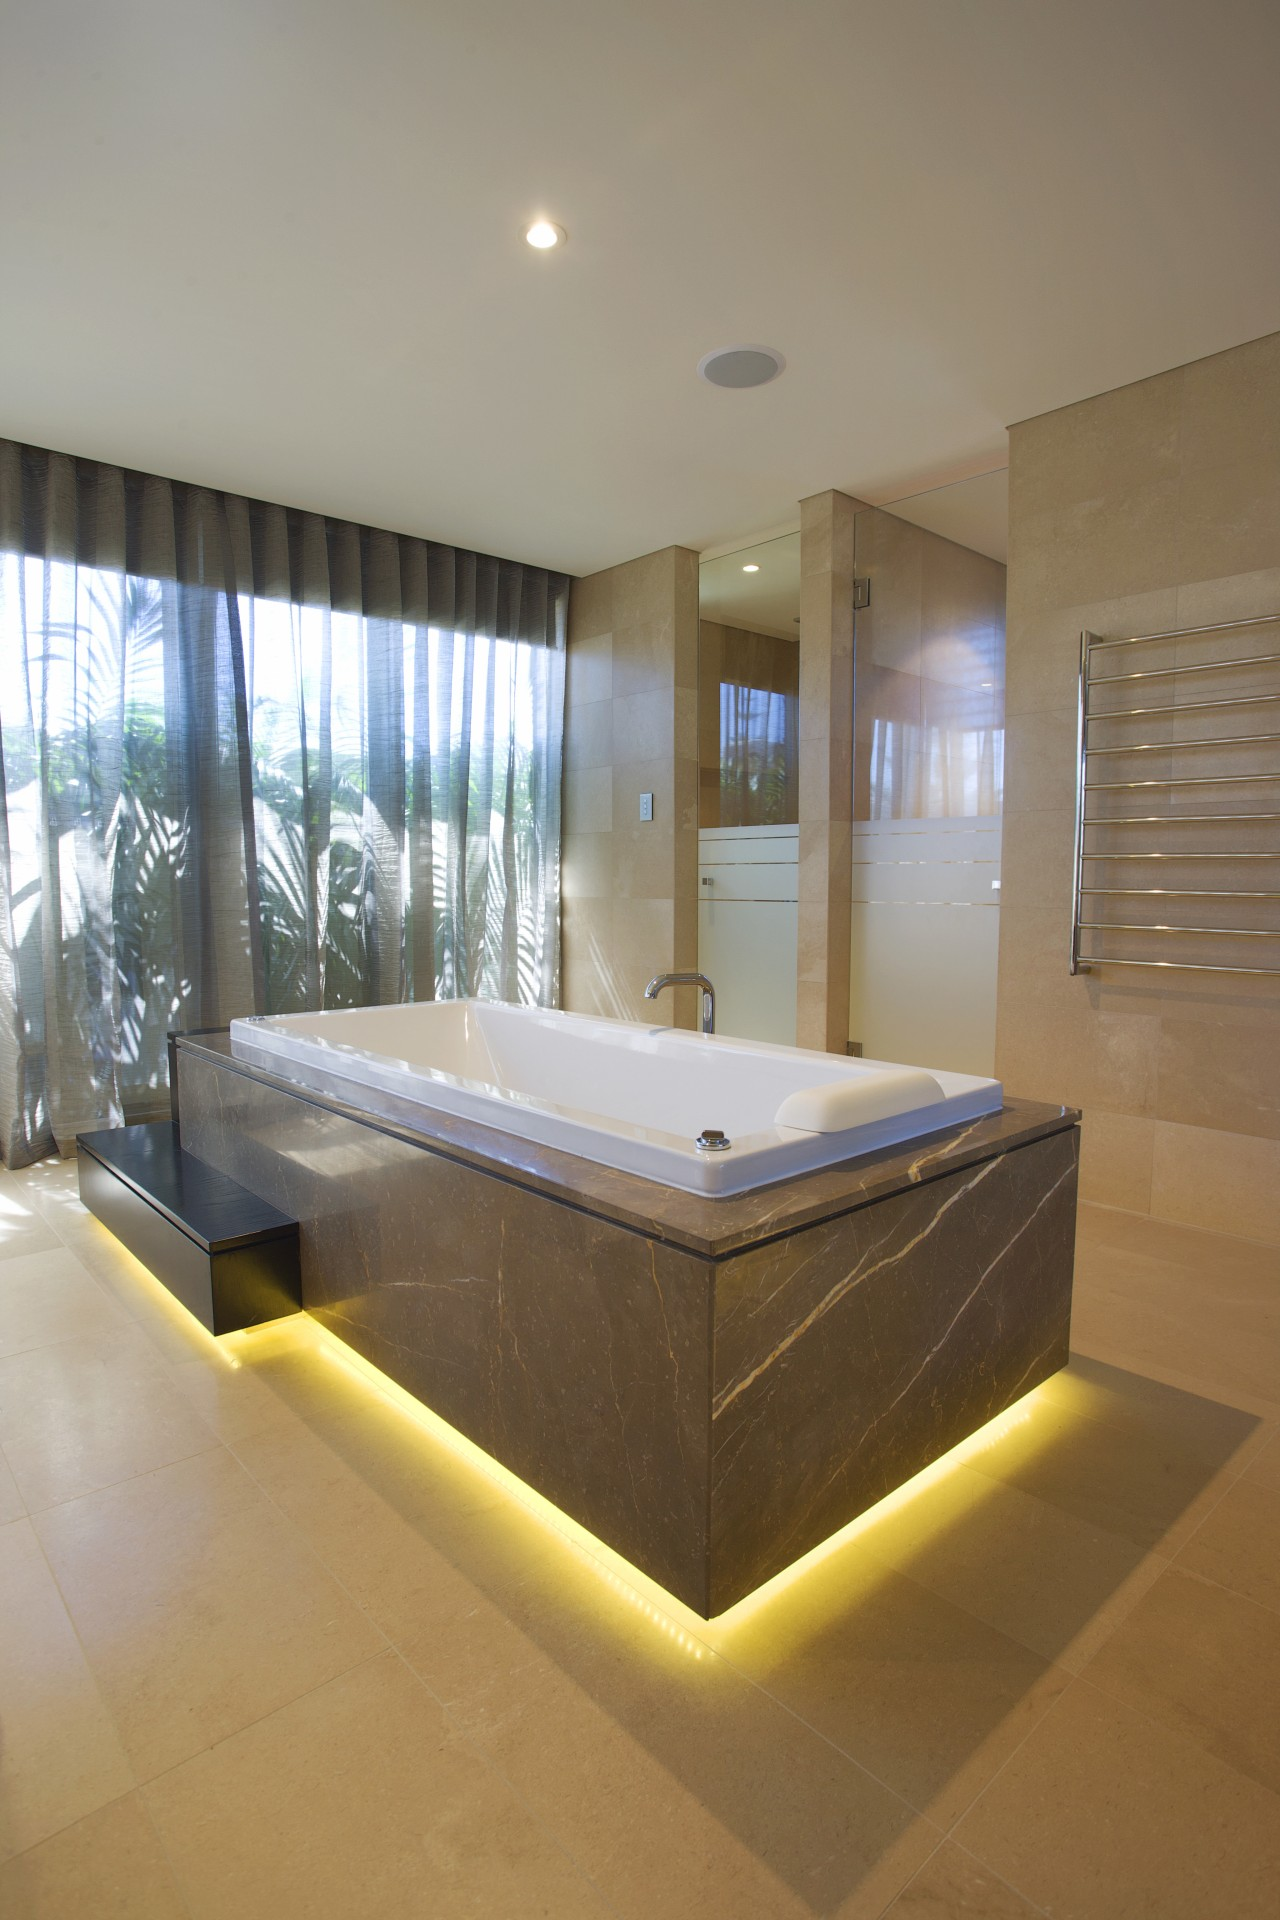 Beige tub with lighting at the bottom. architecture, bathroom, bed frame, ceiling, daylighting, estate, floor, interior design, mattress, real estate, room, brown, gray